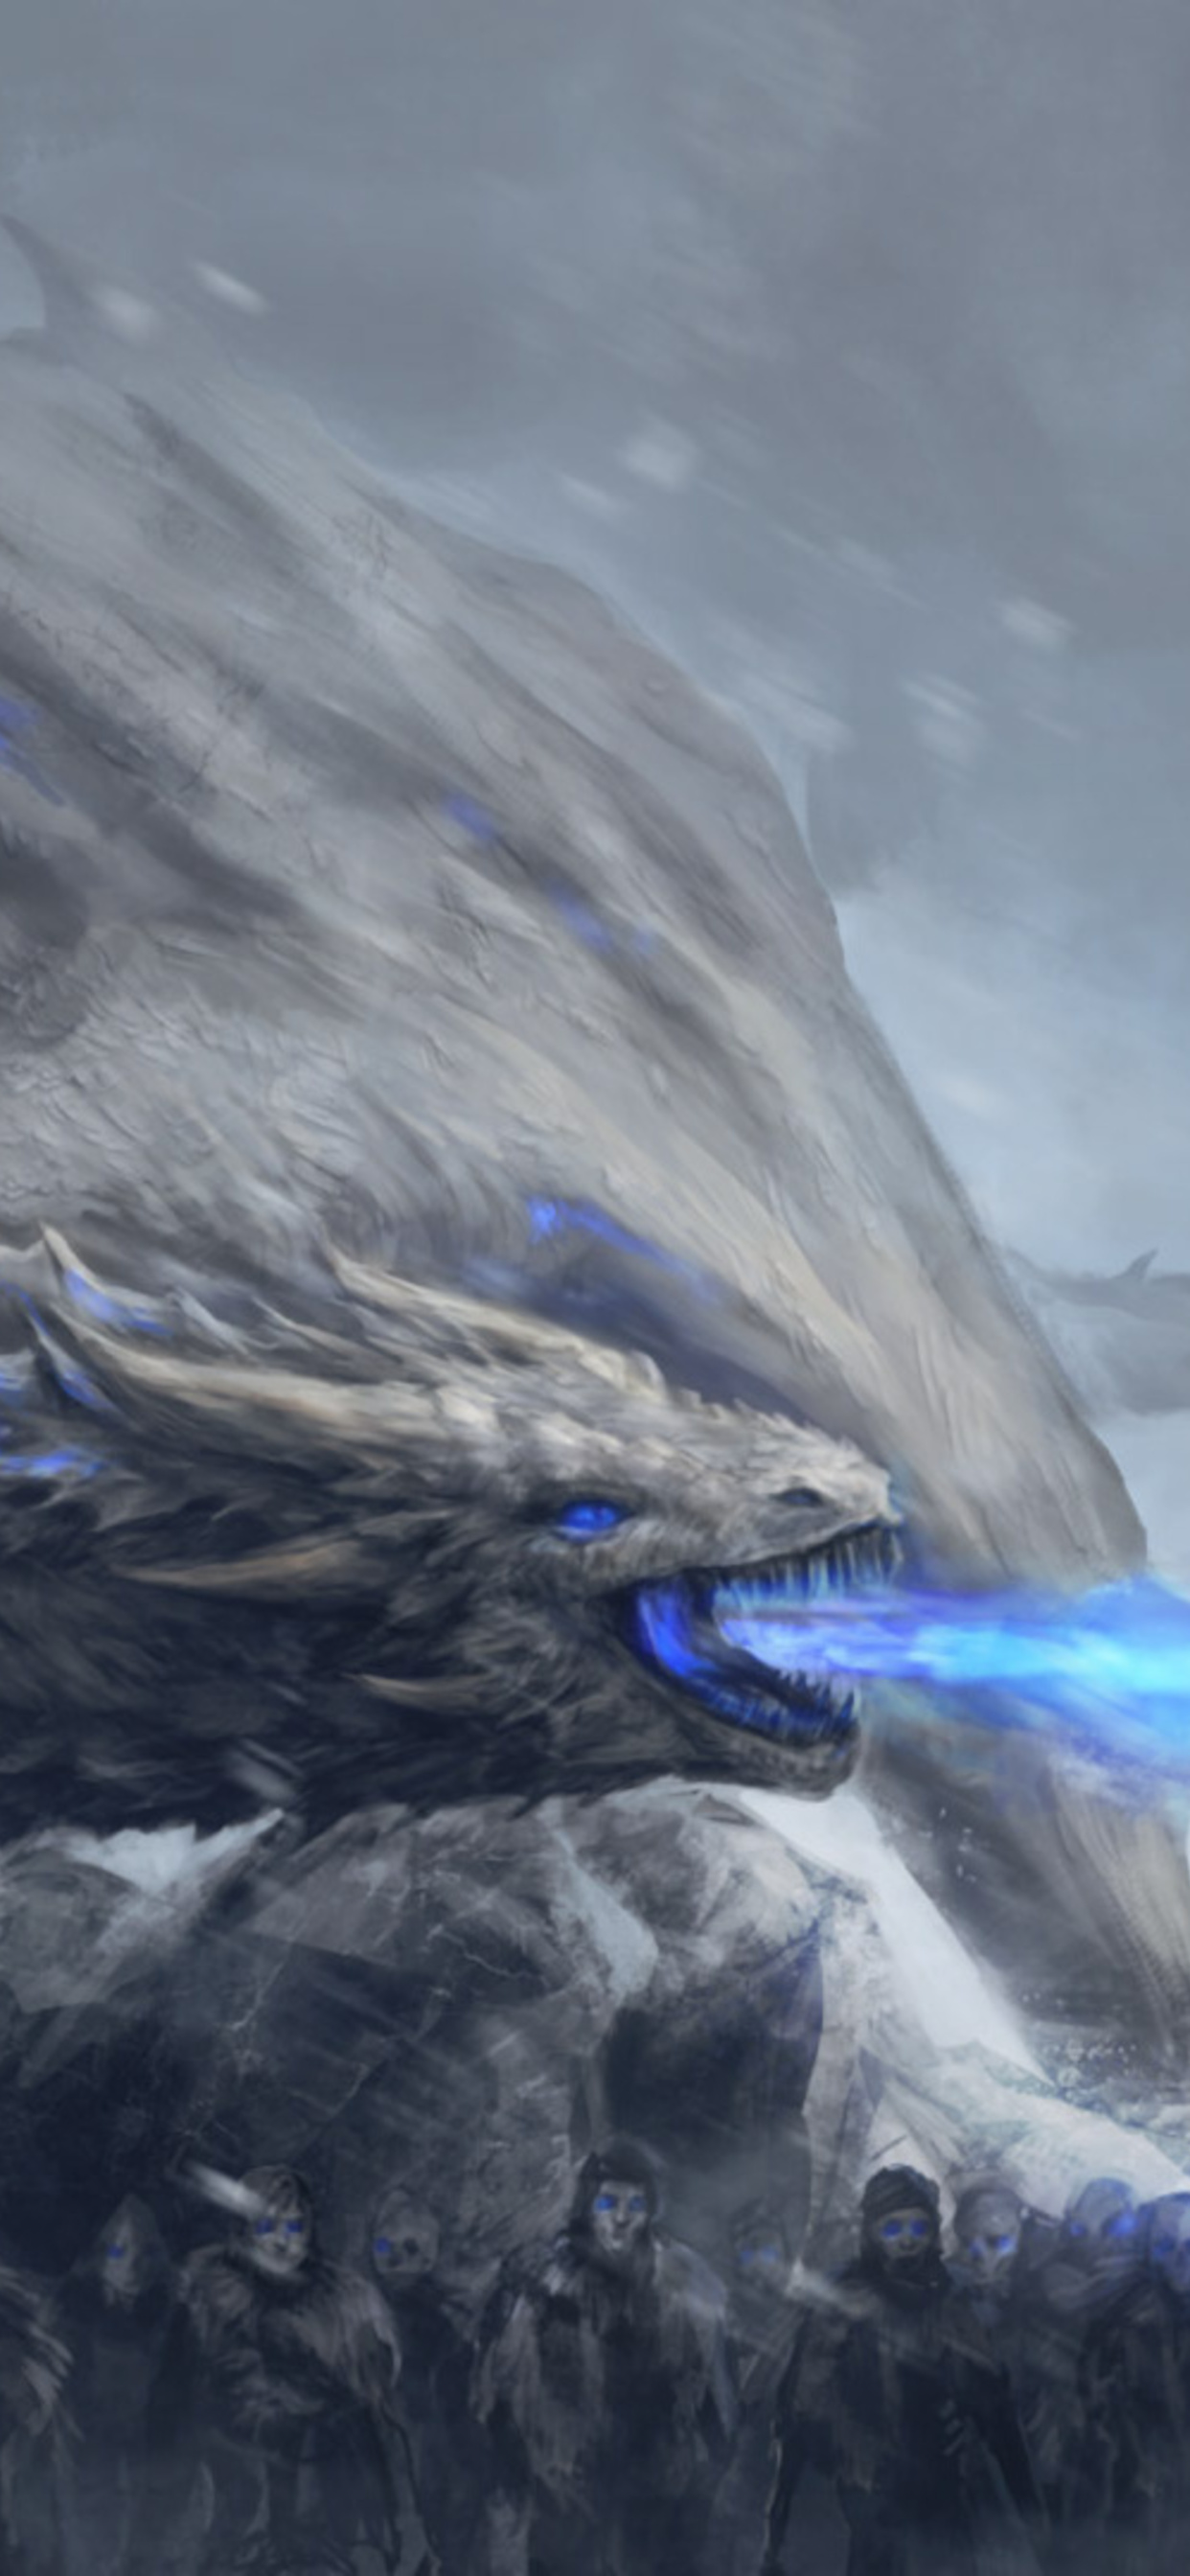 1242x2688 White Walkers Dragon Game Of Thrones Iphone Xs Max Hd 4k